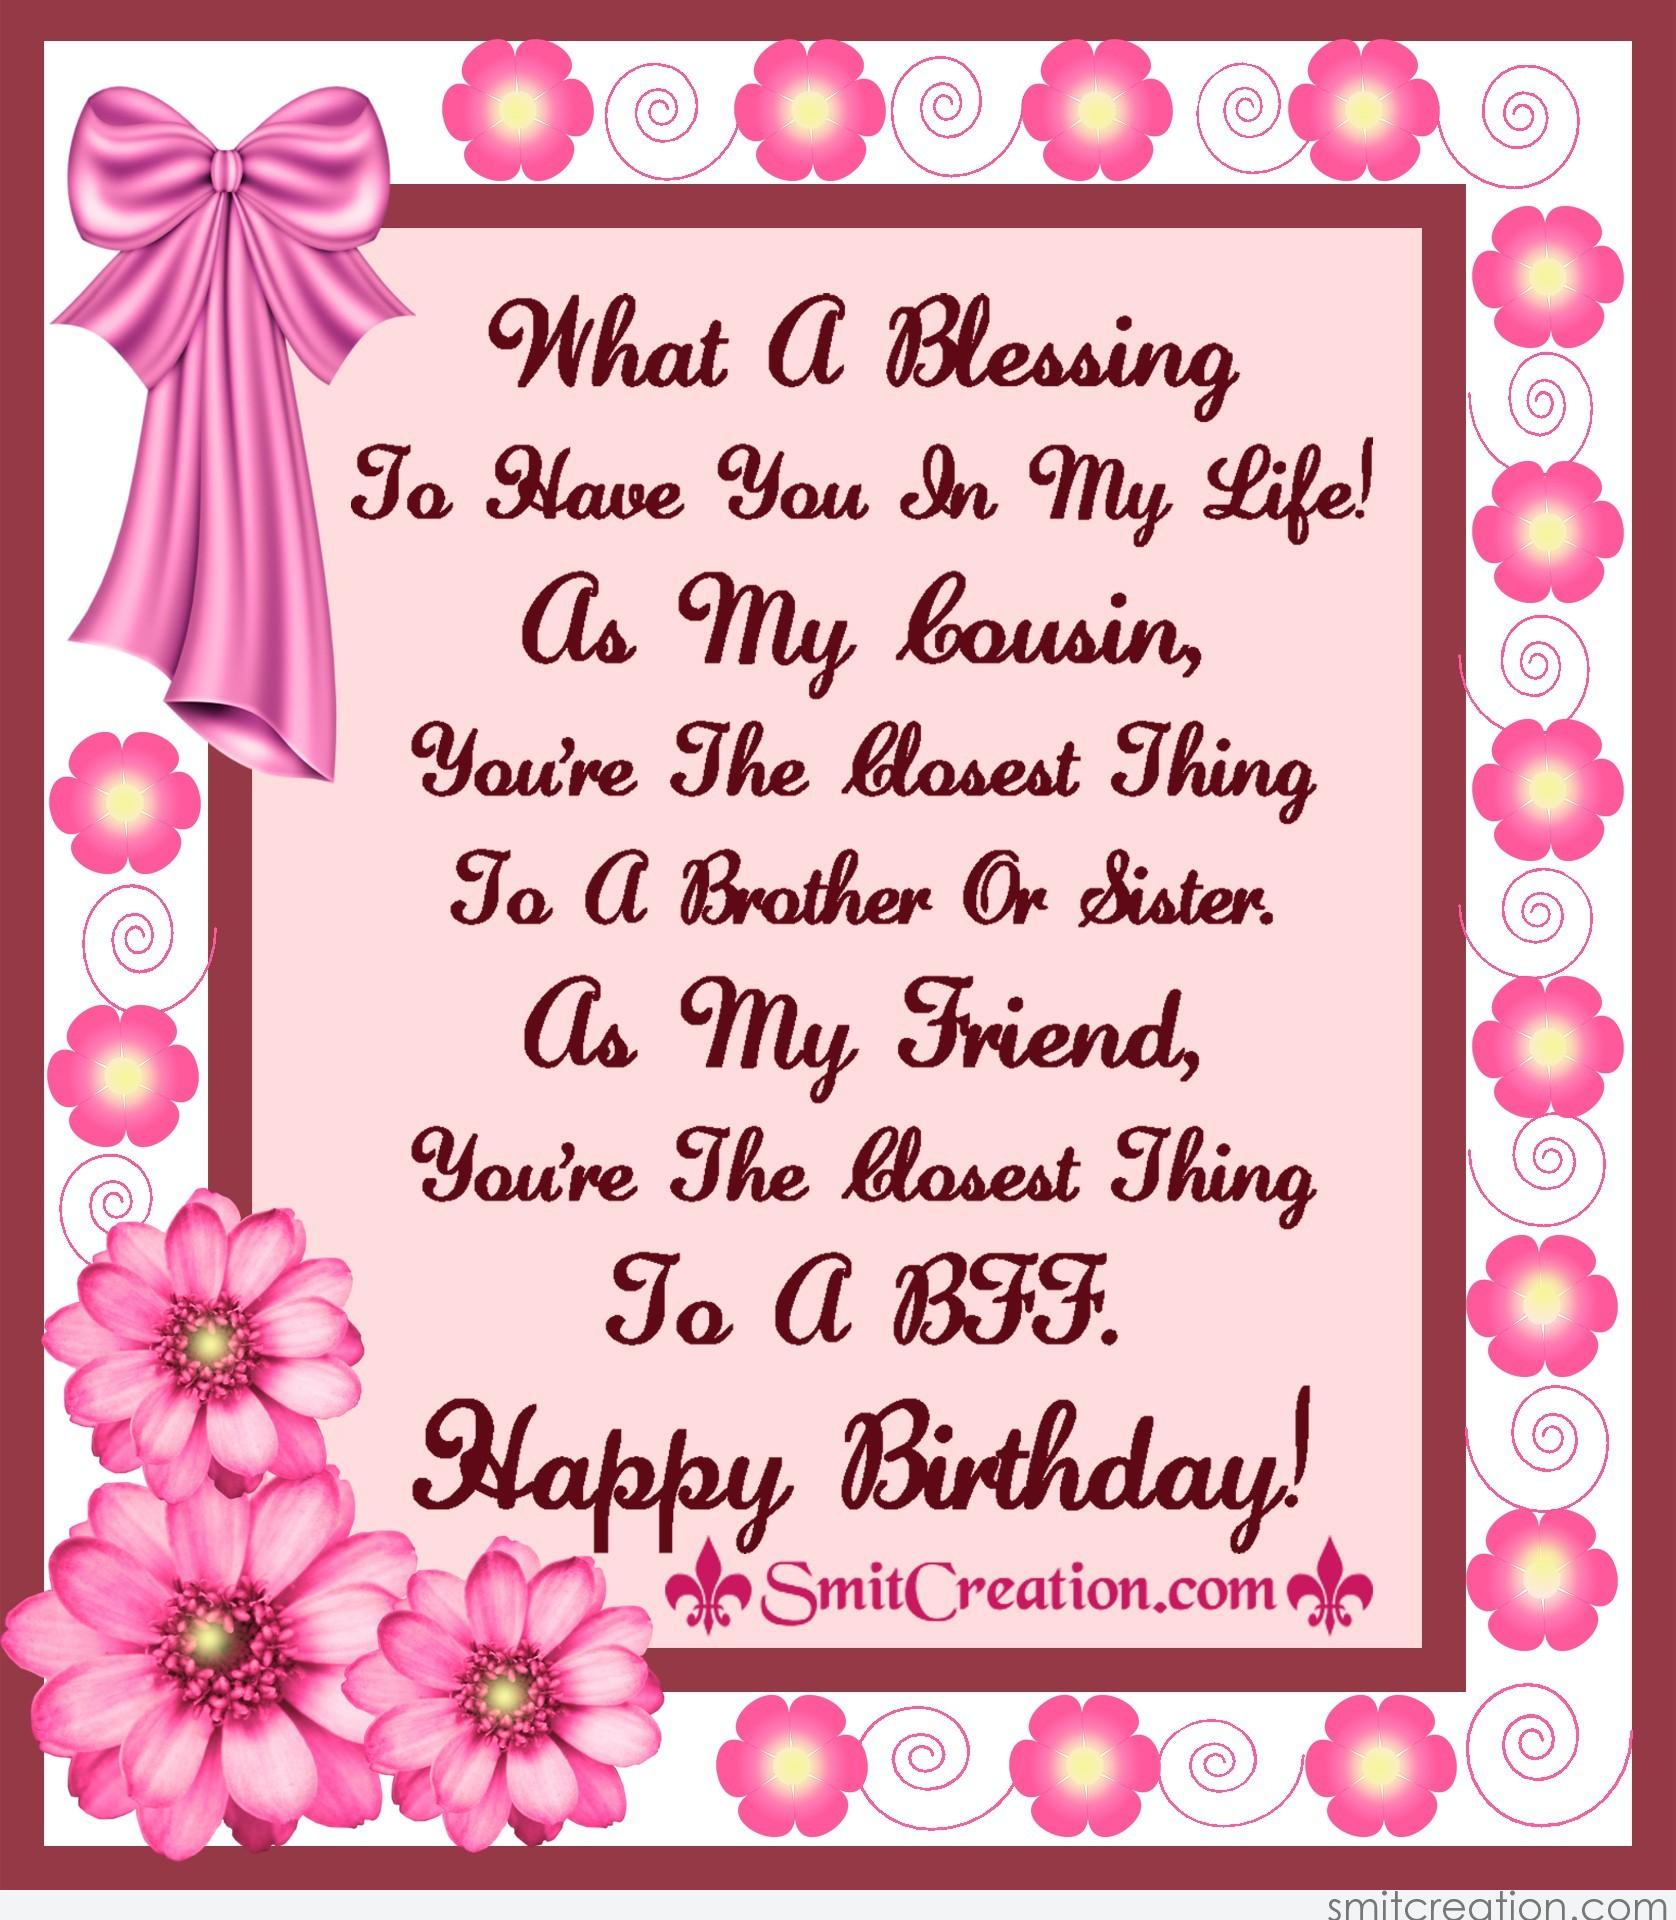 Happy Birthday Cousine What A Blessing You Are In My Life Happy Birthday Wishes To My Cousin